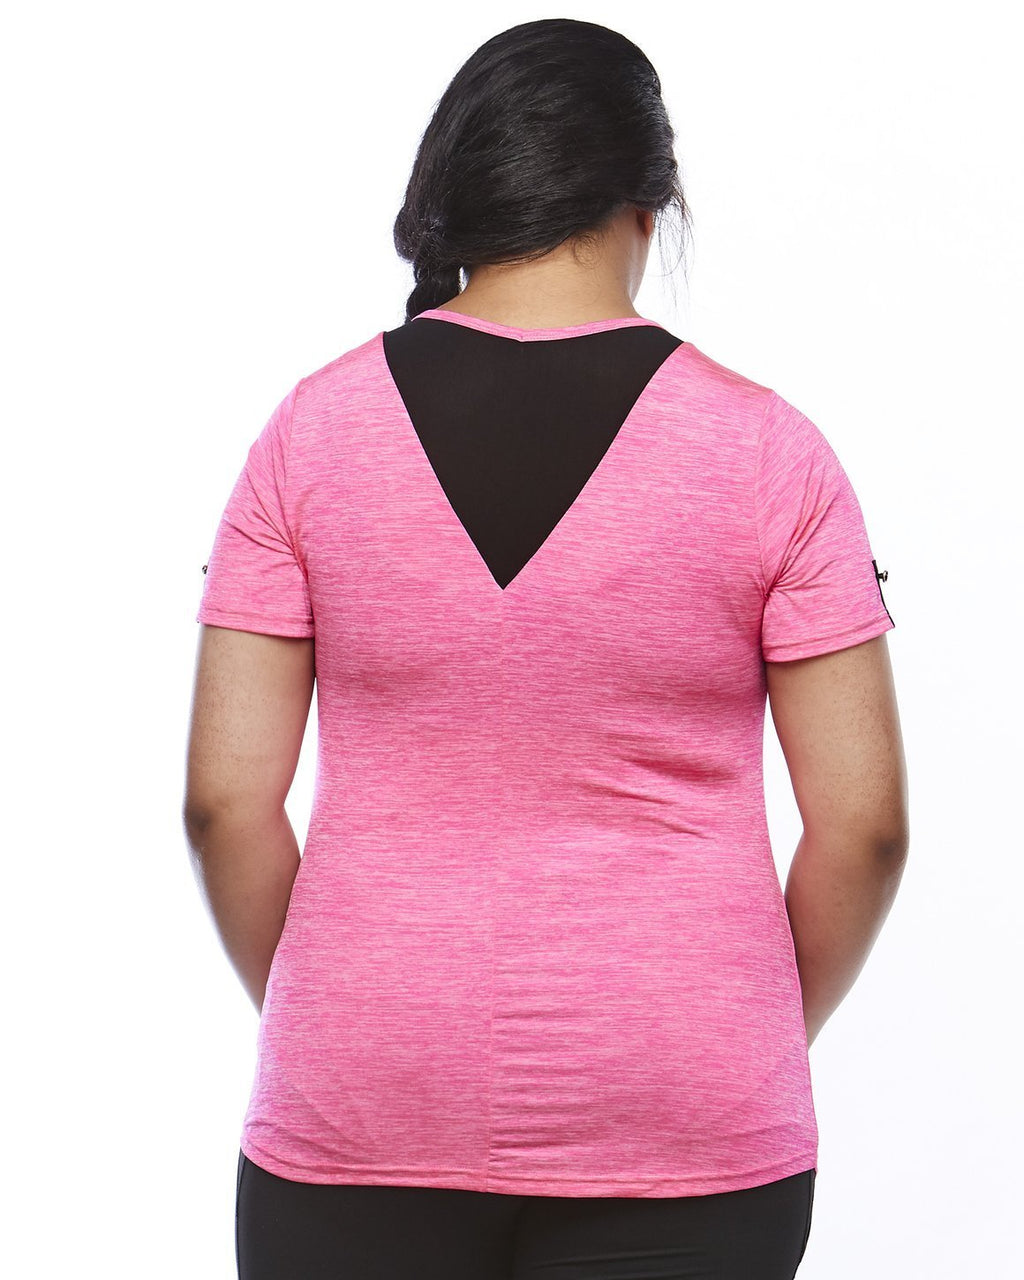 Zest Short Sleeve Shirt - Pink - Be Activewear